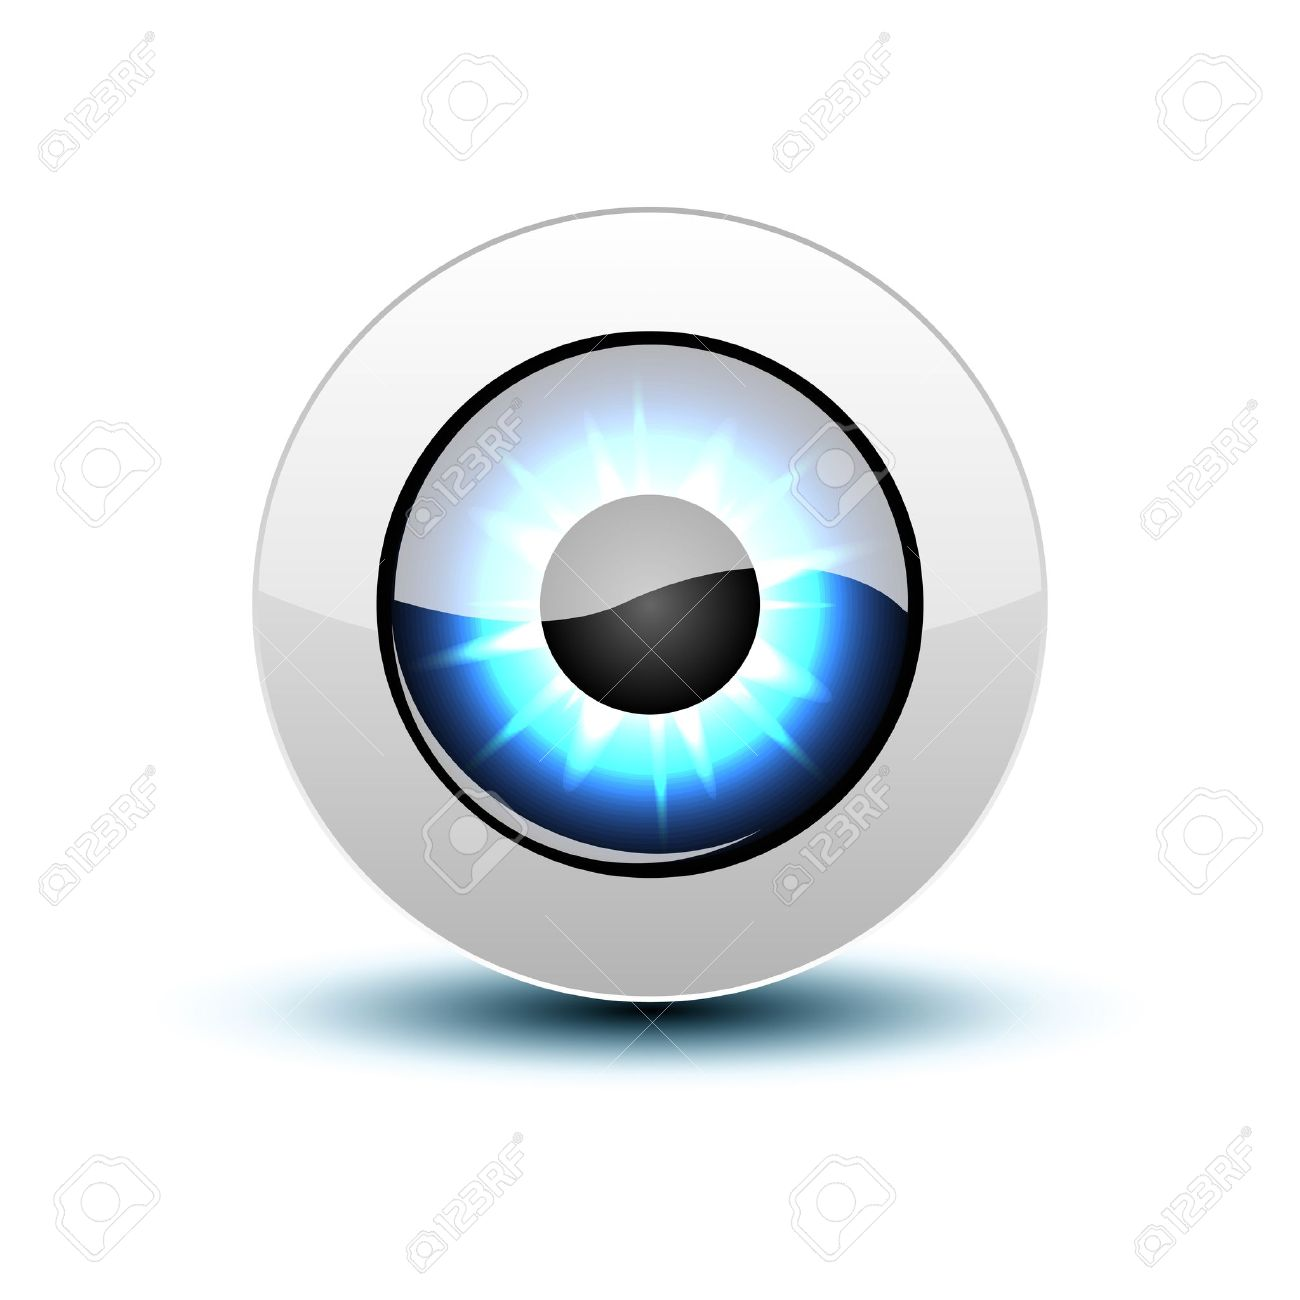 see eye glasses icon blue eye icon with shadow on white